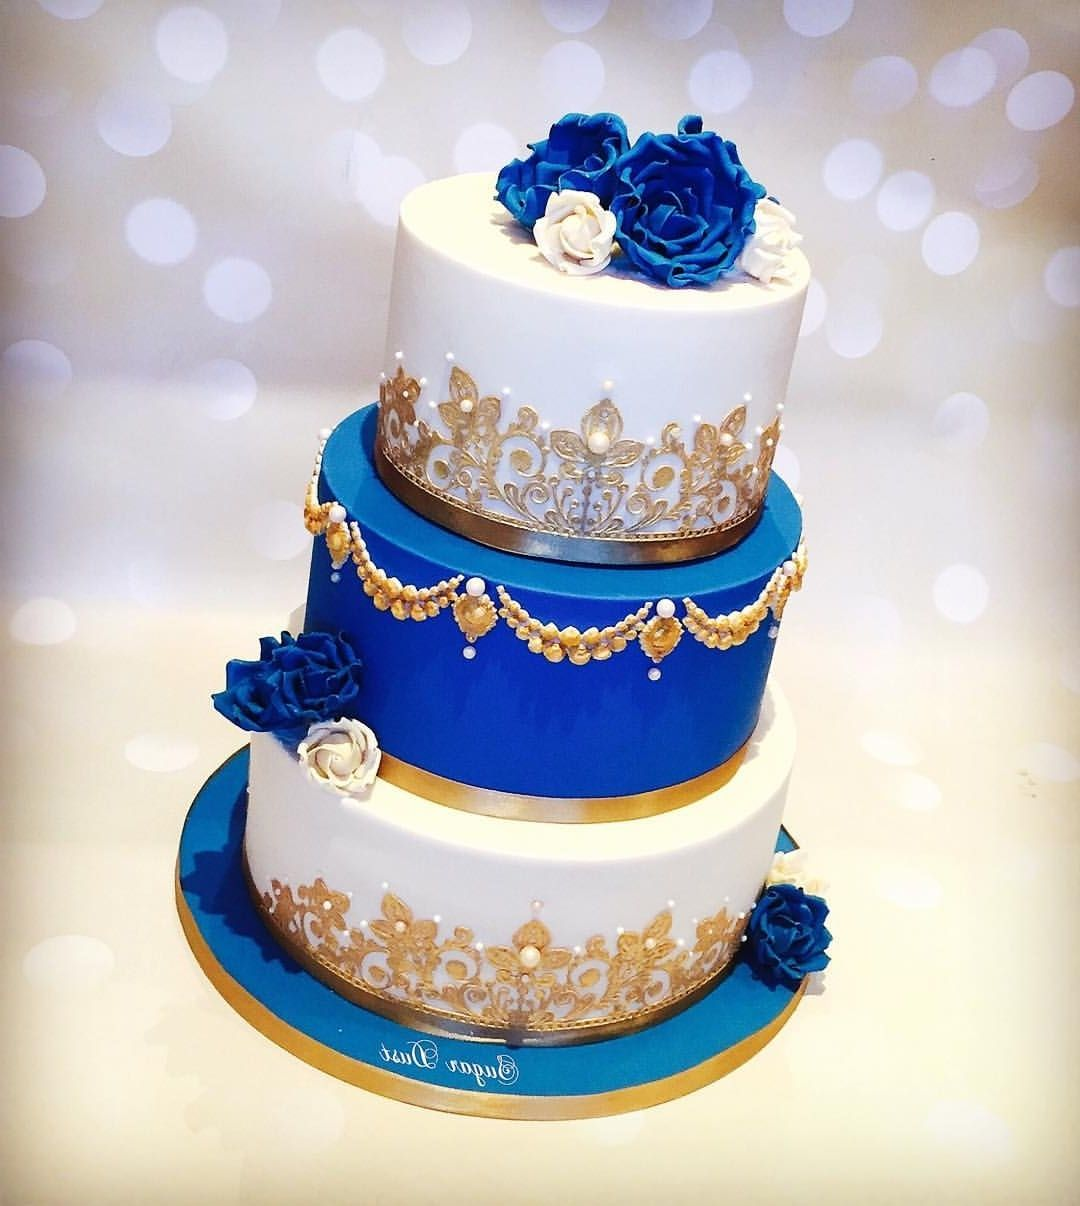 wedding cakes royal blue and gold wedding cakes royal blue and gold wedding dress 25398